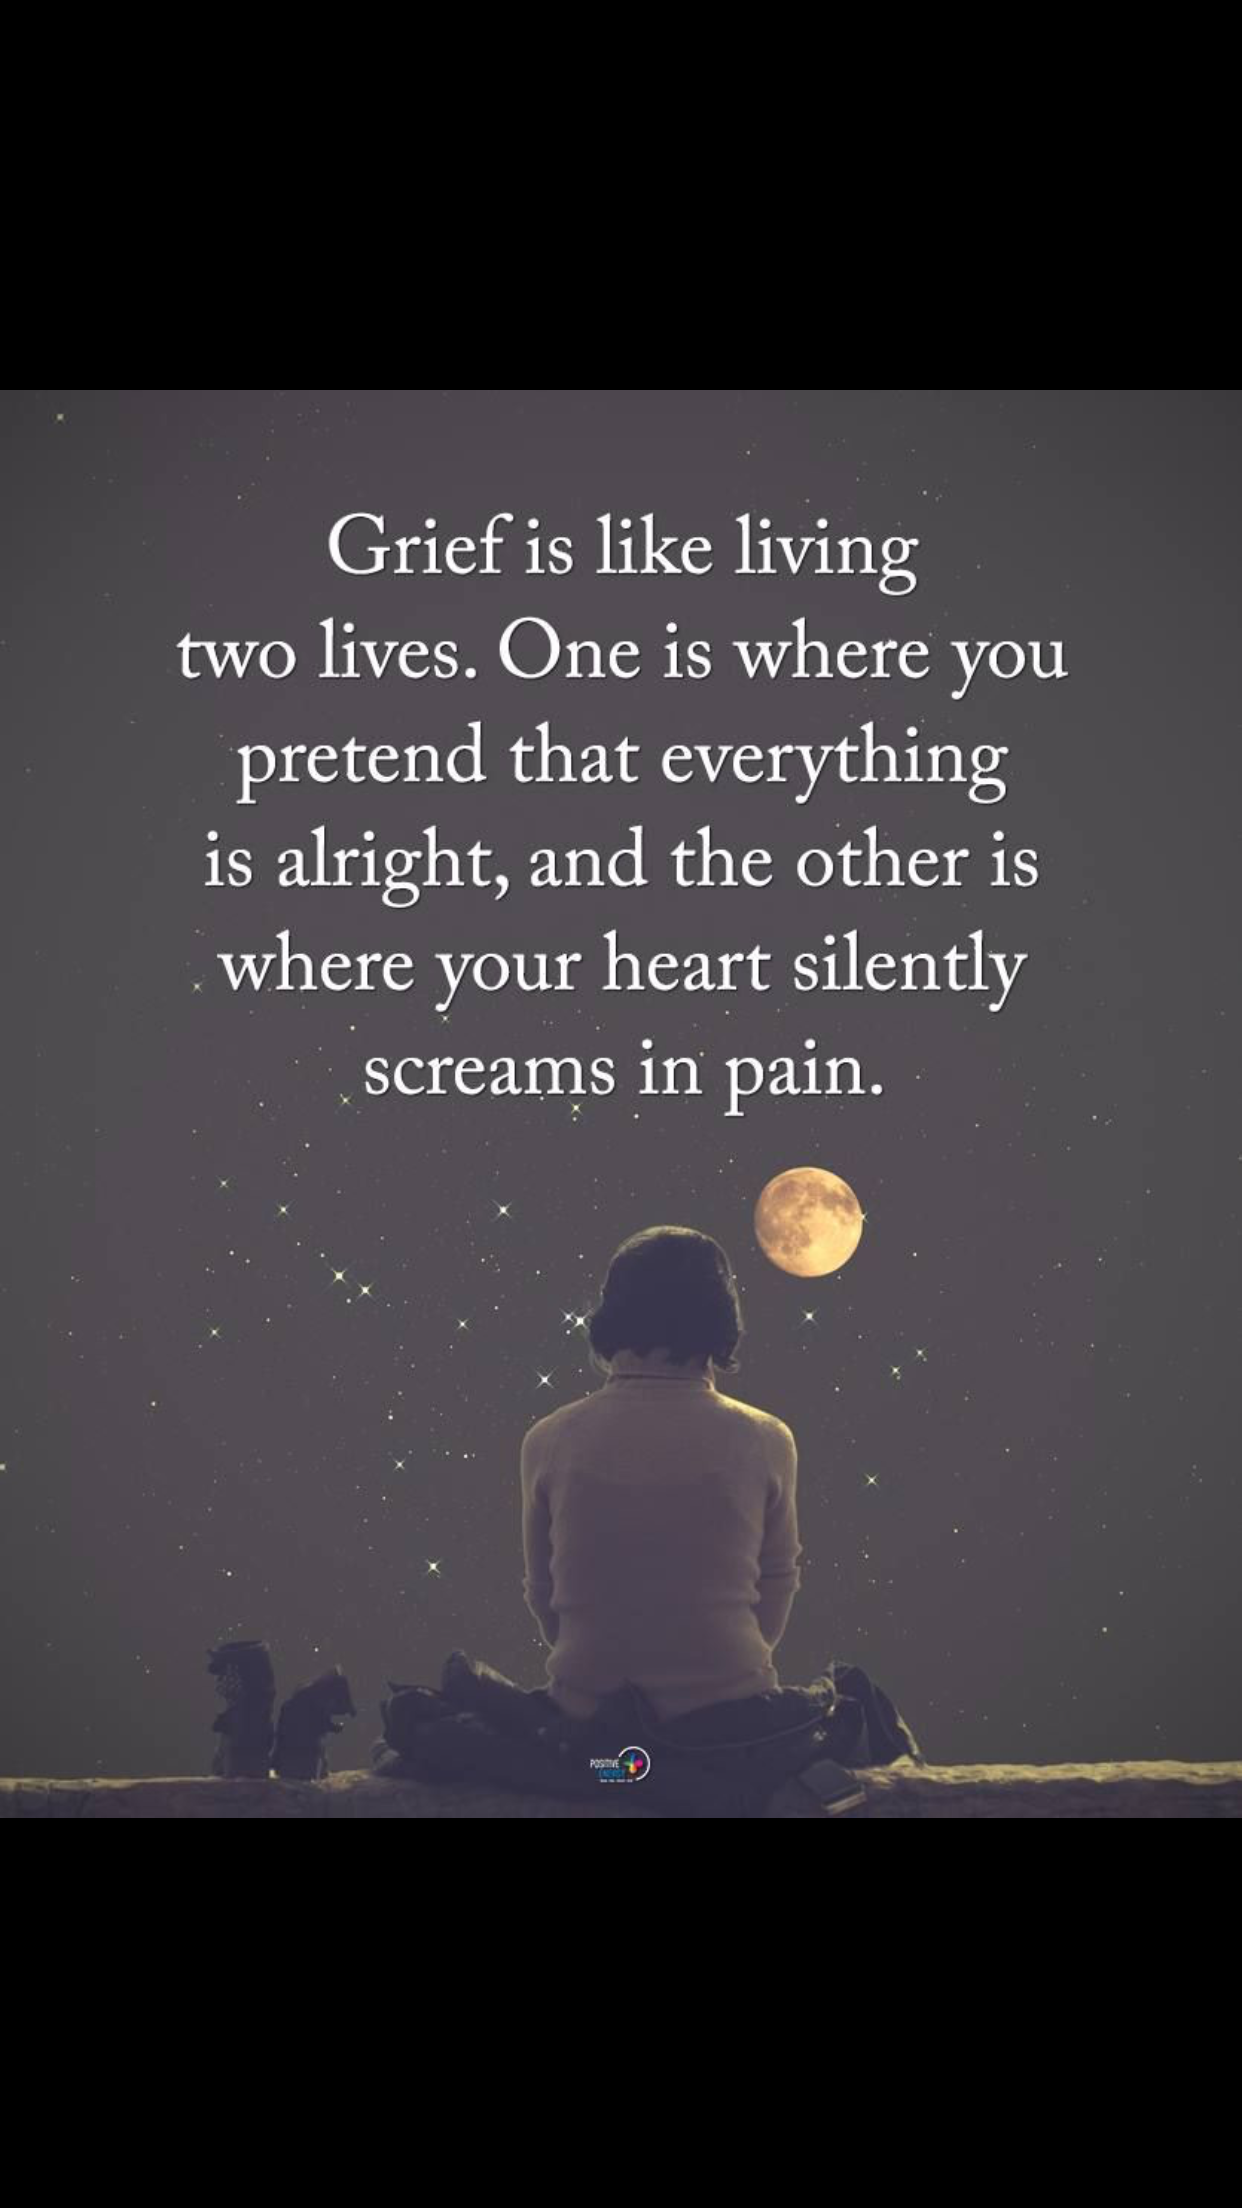 Pin By Frie Groffen On Teksten Mijn Kind Grieving Quotes